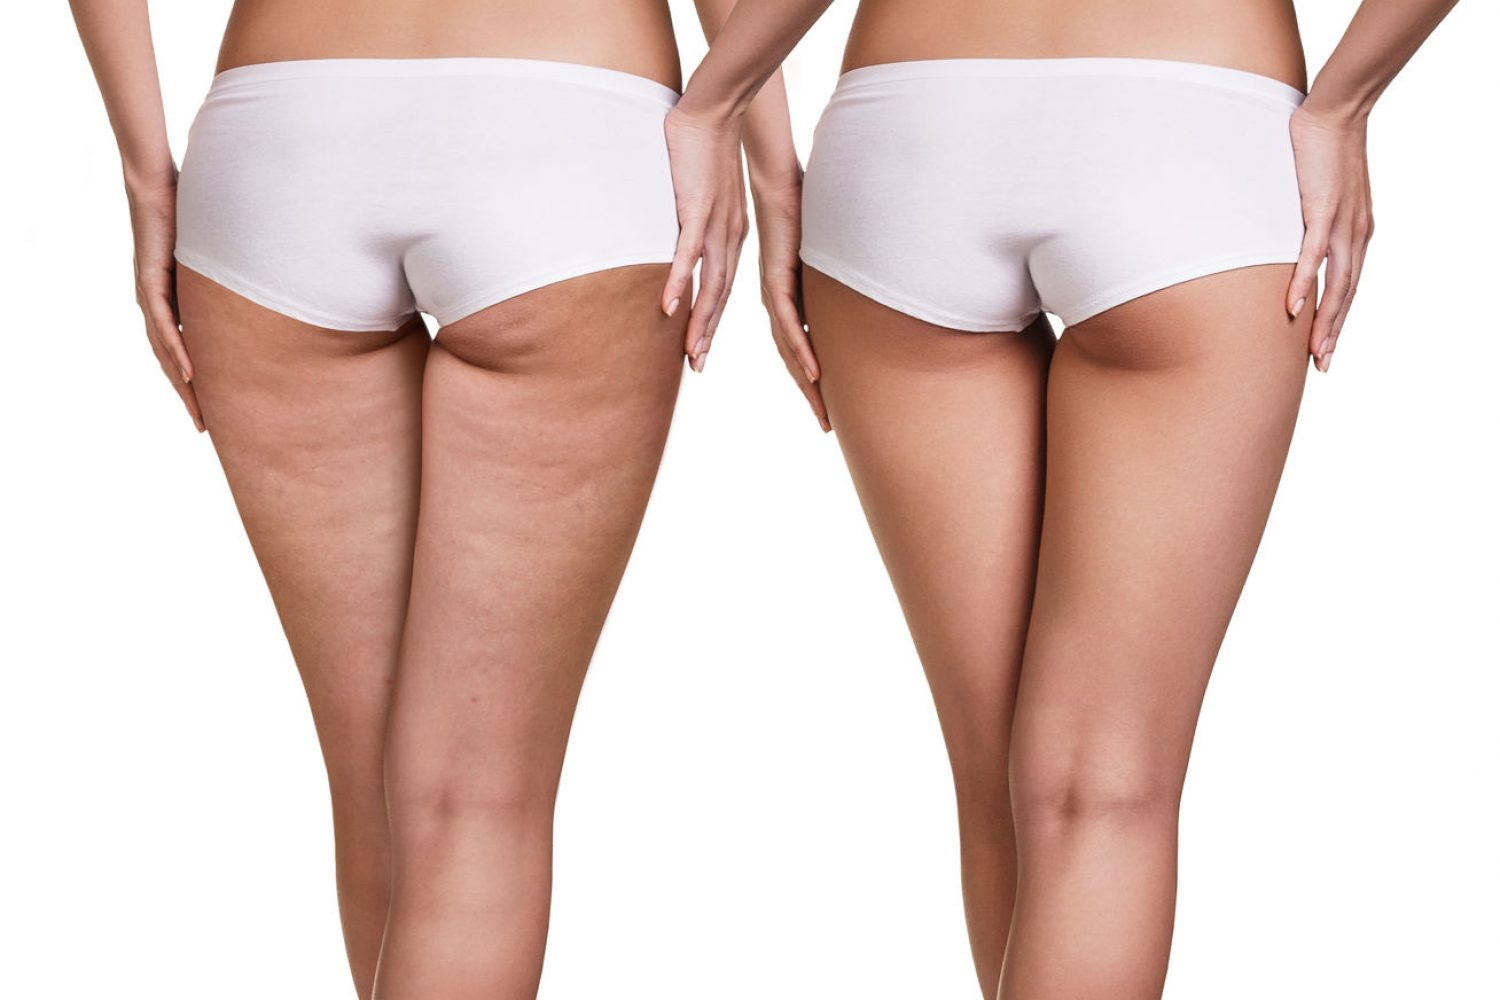 68291325 - female buttocks before and after cellulite skin isolated on white